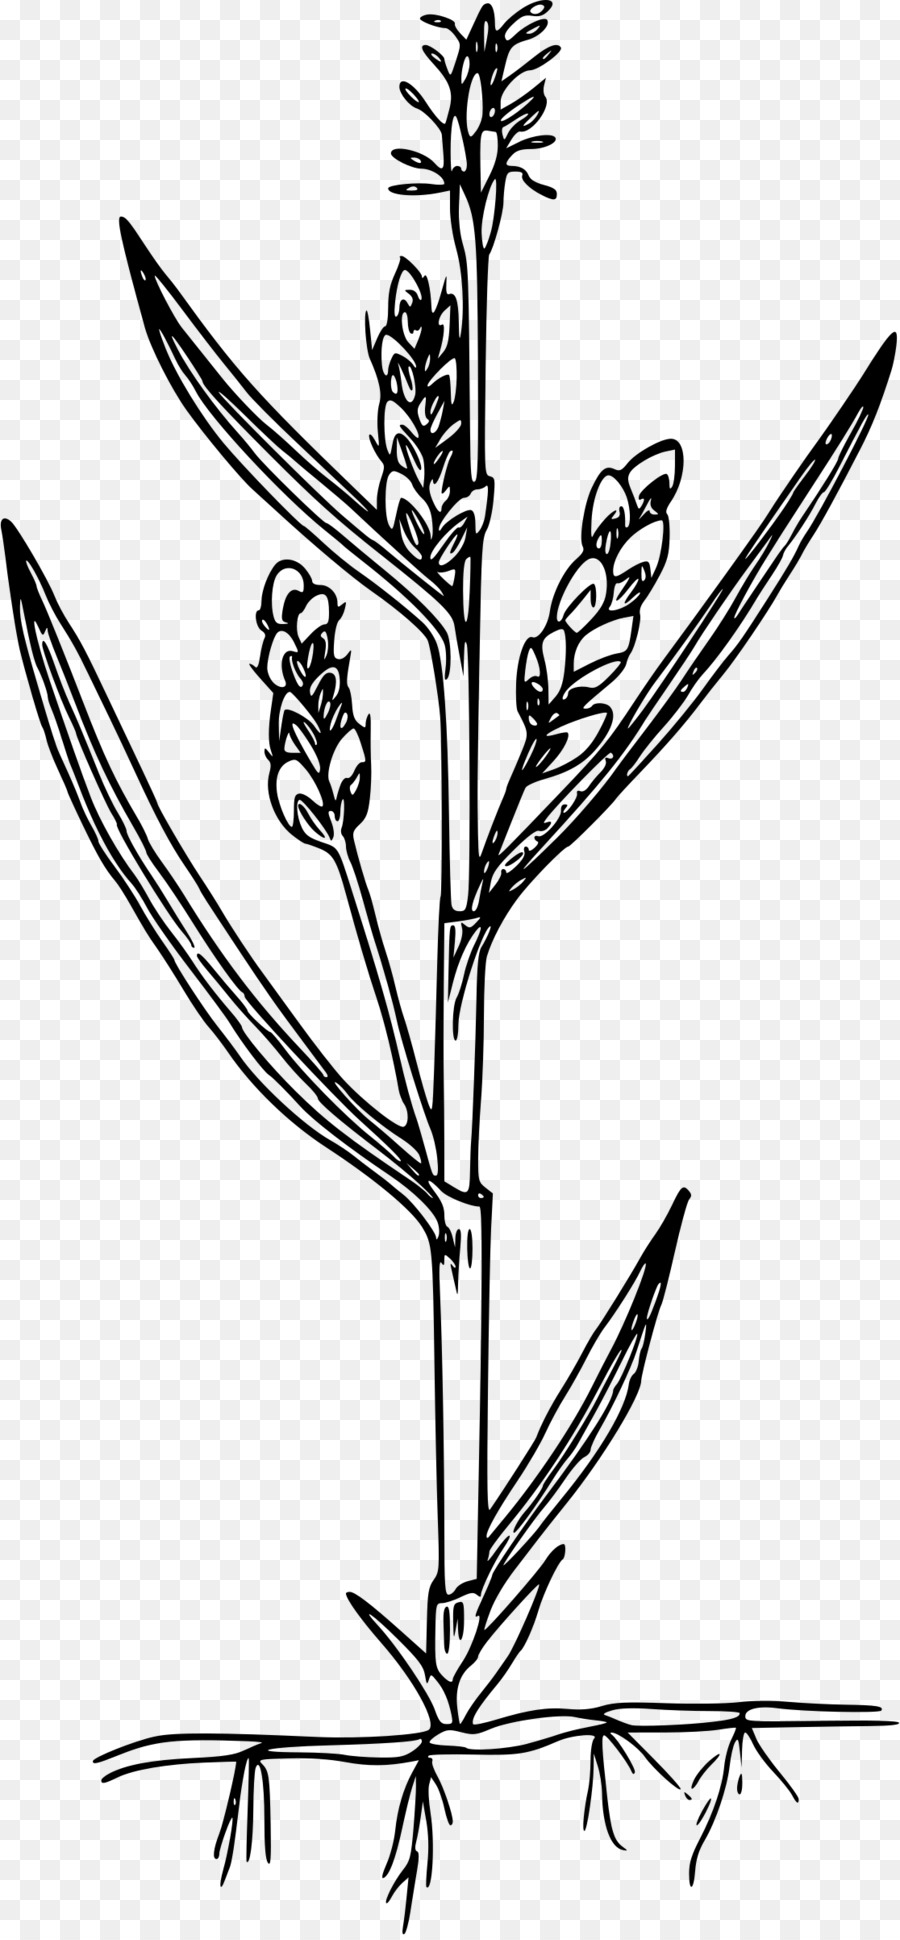 Carex aurea clipart royalty free stock Black And White Flowertransparent png image & clipart free download royalty free stock